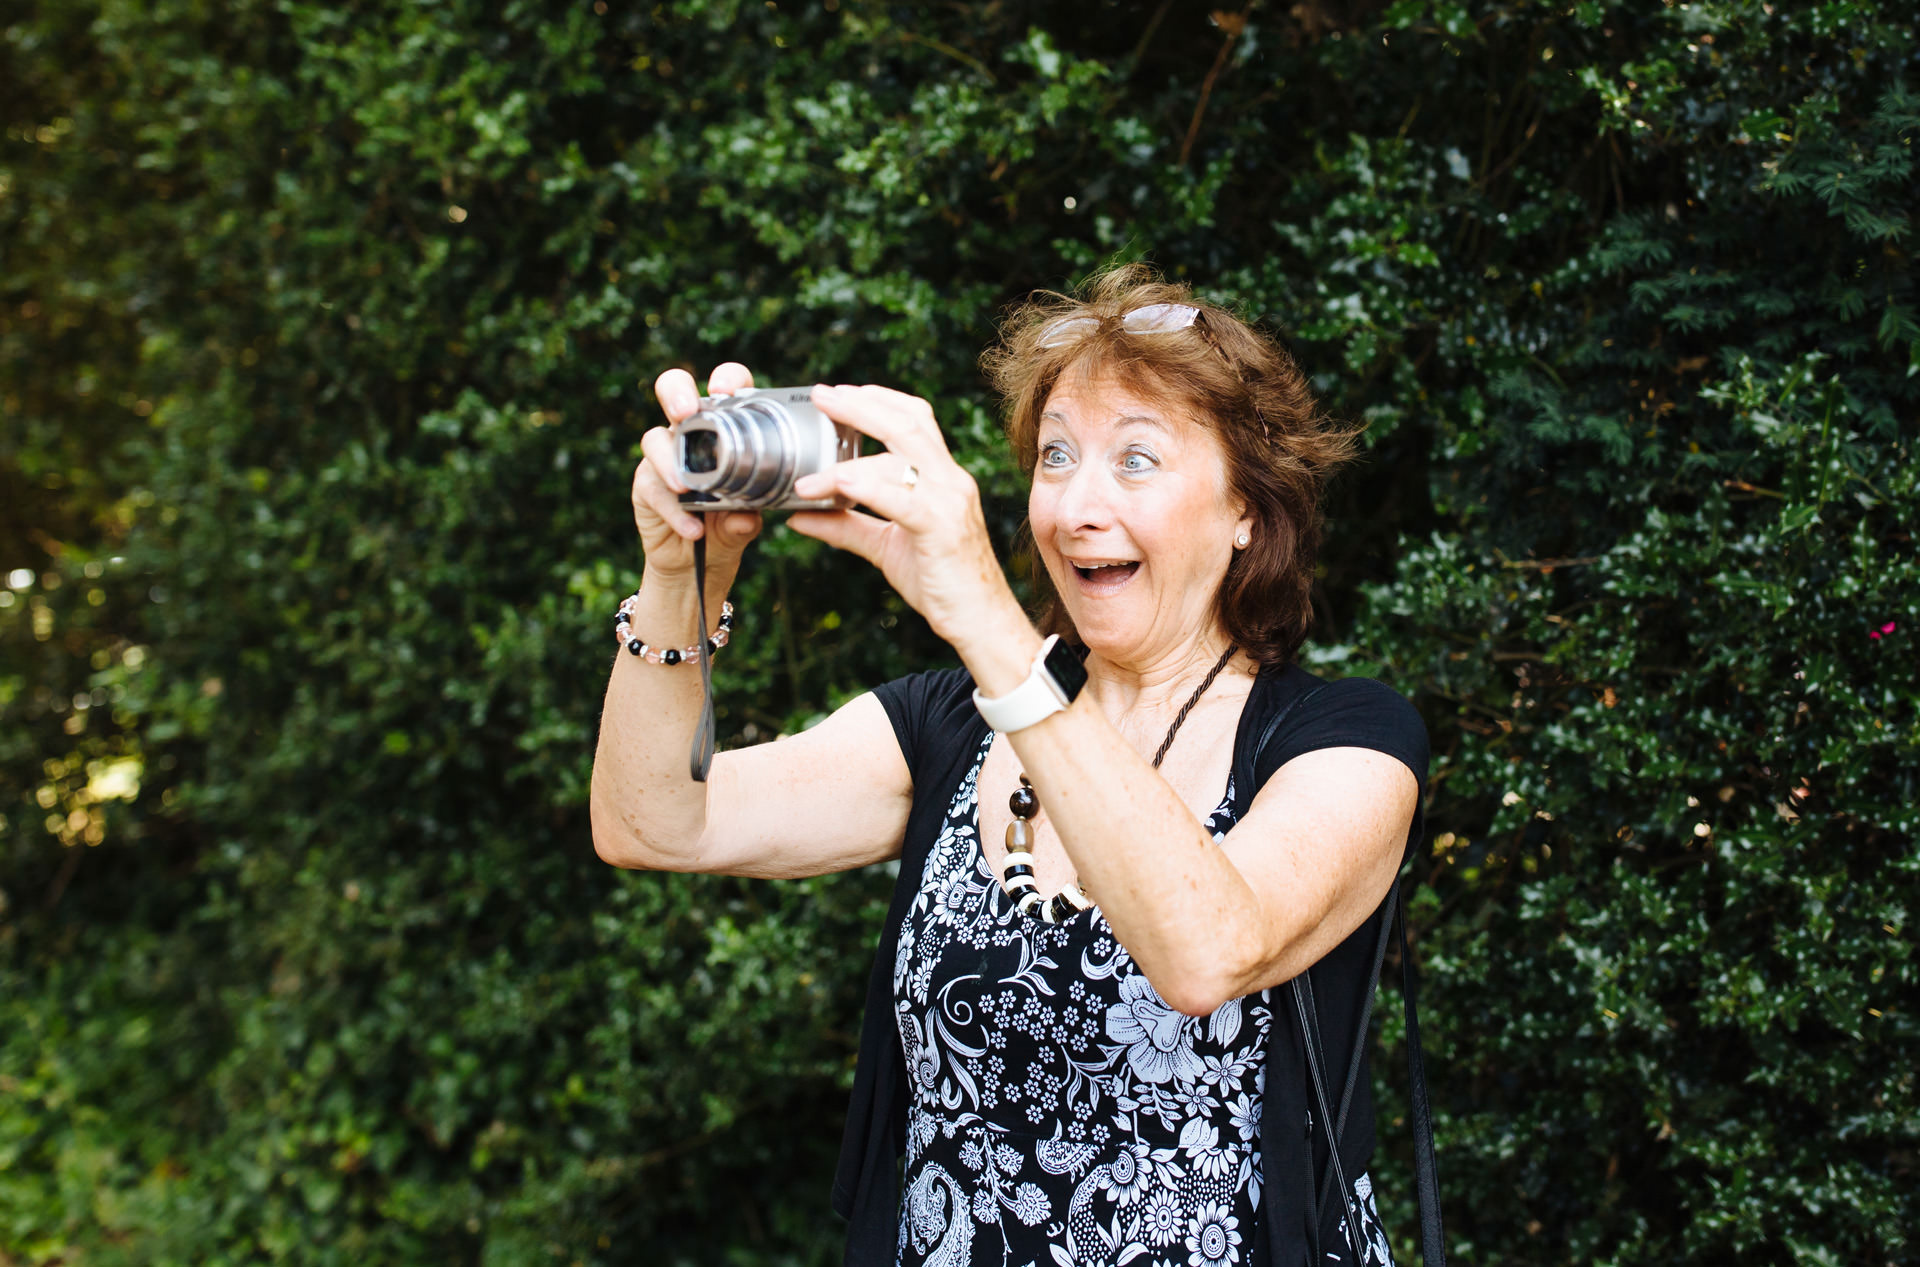 lady taking a picture and pulling a funny surprised face